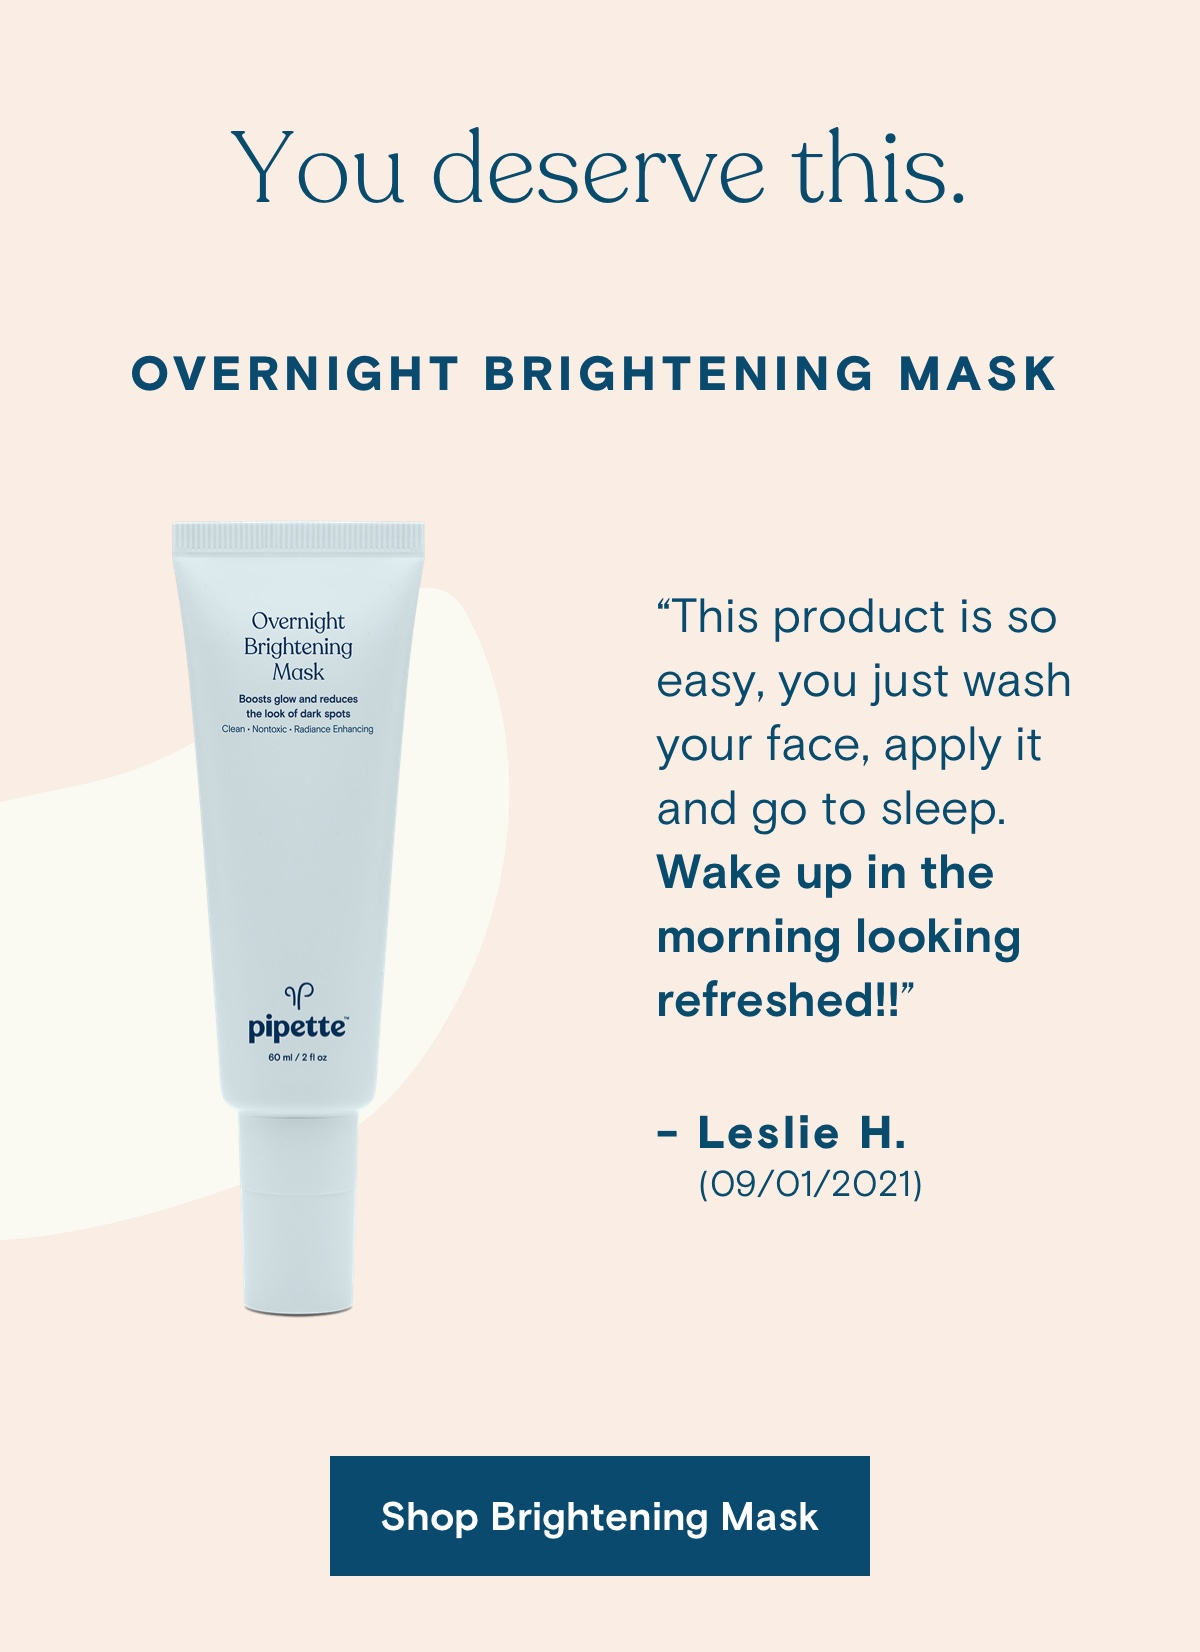 """You deserve this. Overnight Brightening Mask. """"This product is so easy, you just wash your face, apply it and go to sleep. Wake up in the morning looking refreshed!!""""  - Leslie H. (09/01/2021). Shop Brightening Mask."""